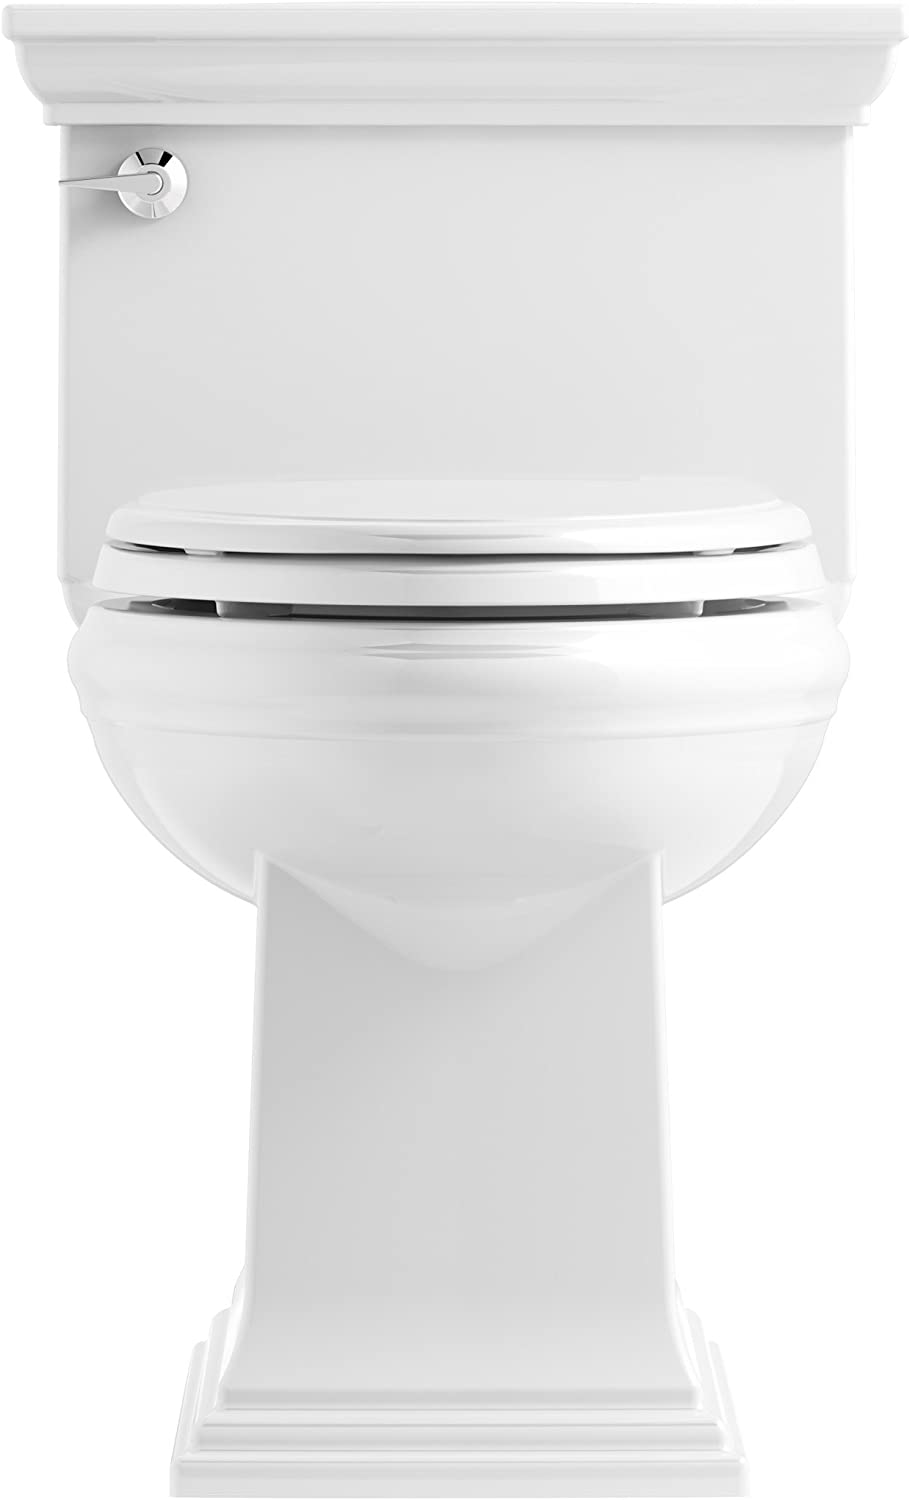 Almond KOHLER K-6428-47 Memoirs Stately Comfort Height Skirted One-Piece Compact Elongated 1.28 GPF Toilet with AquaPiston Flush Technology and Left-Hand Trip Lever